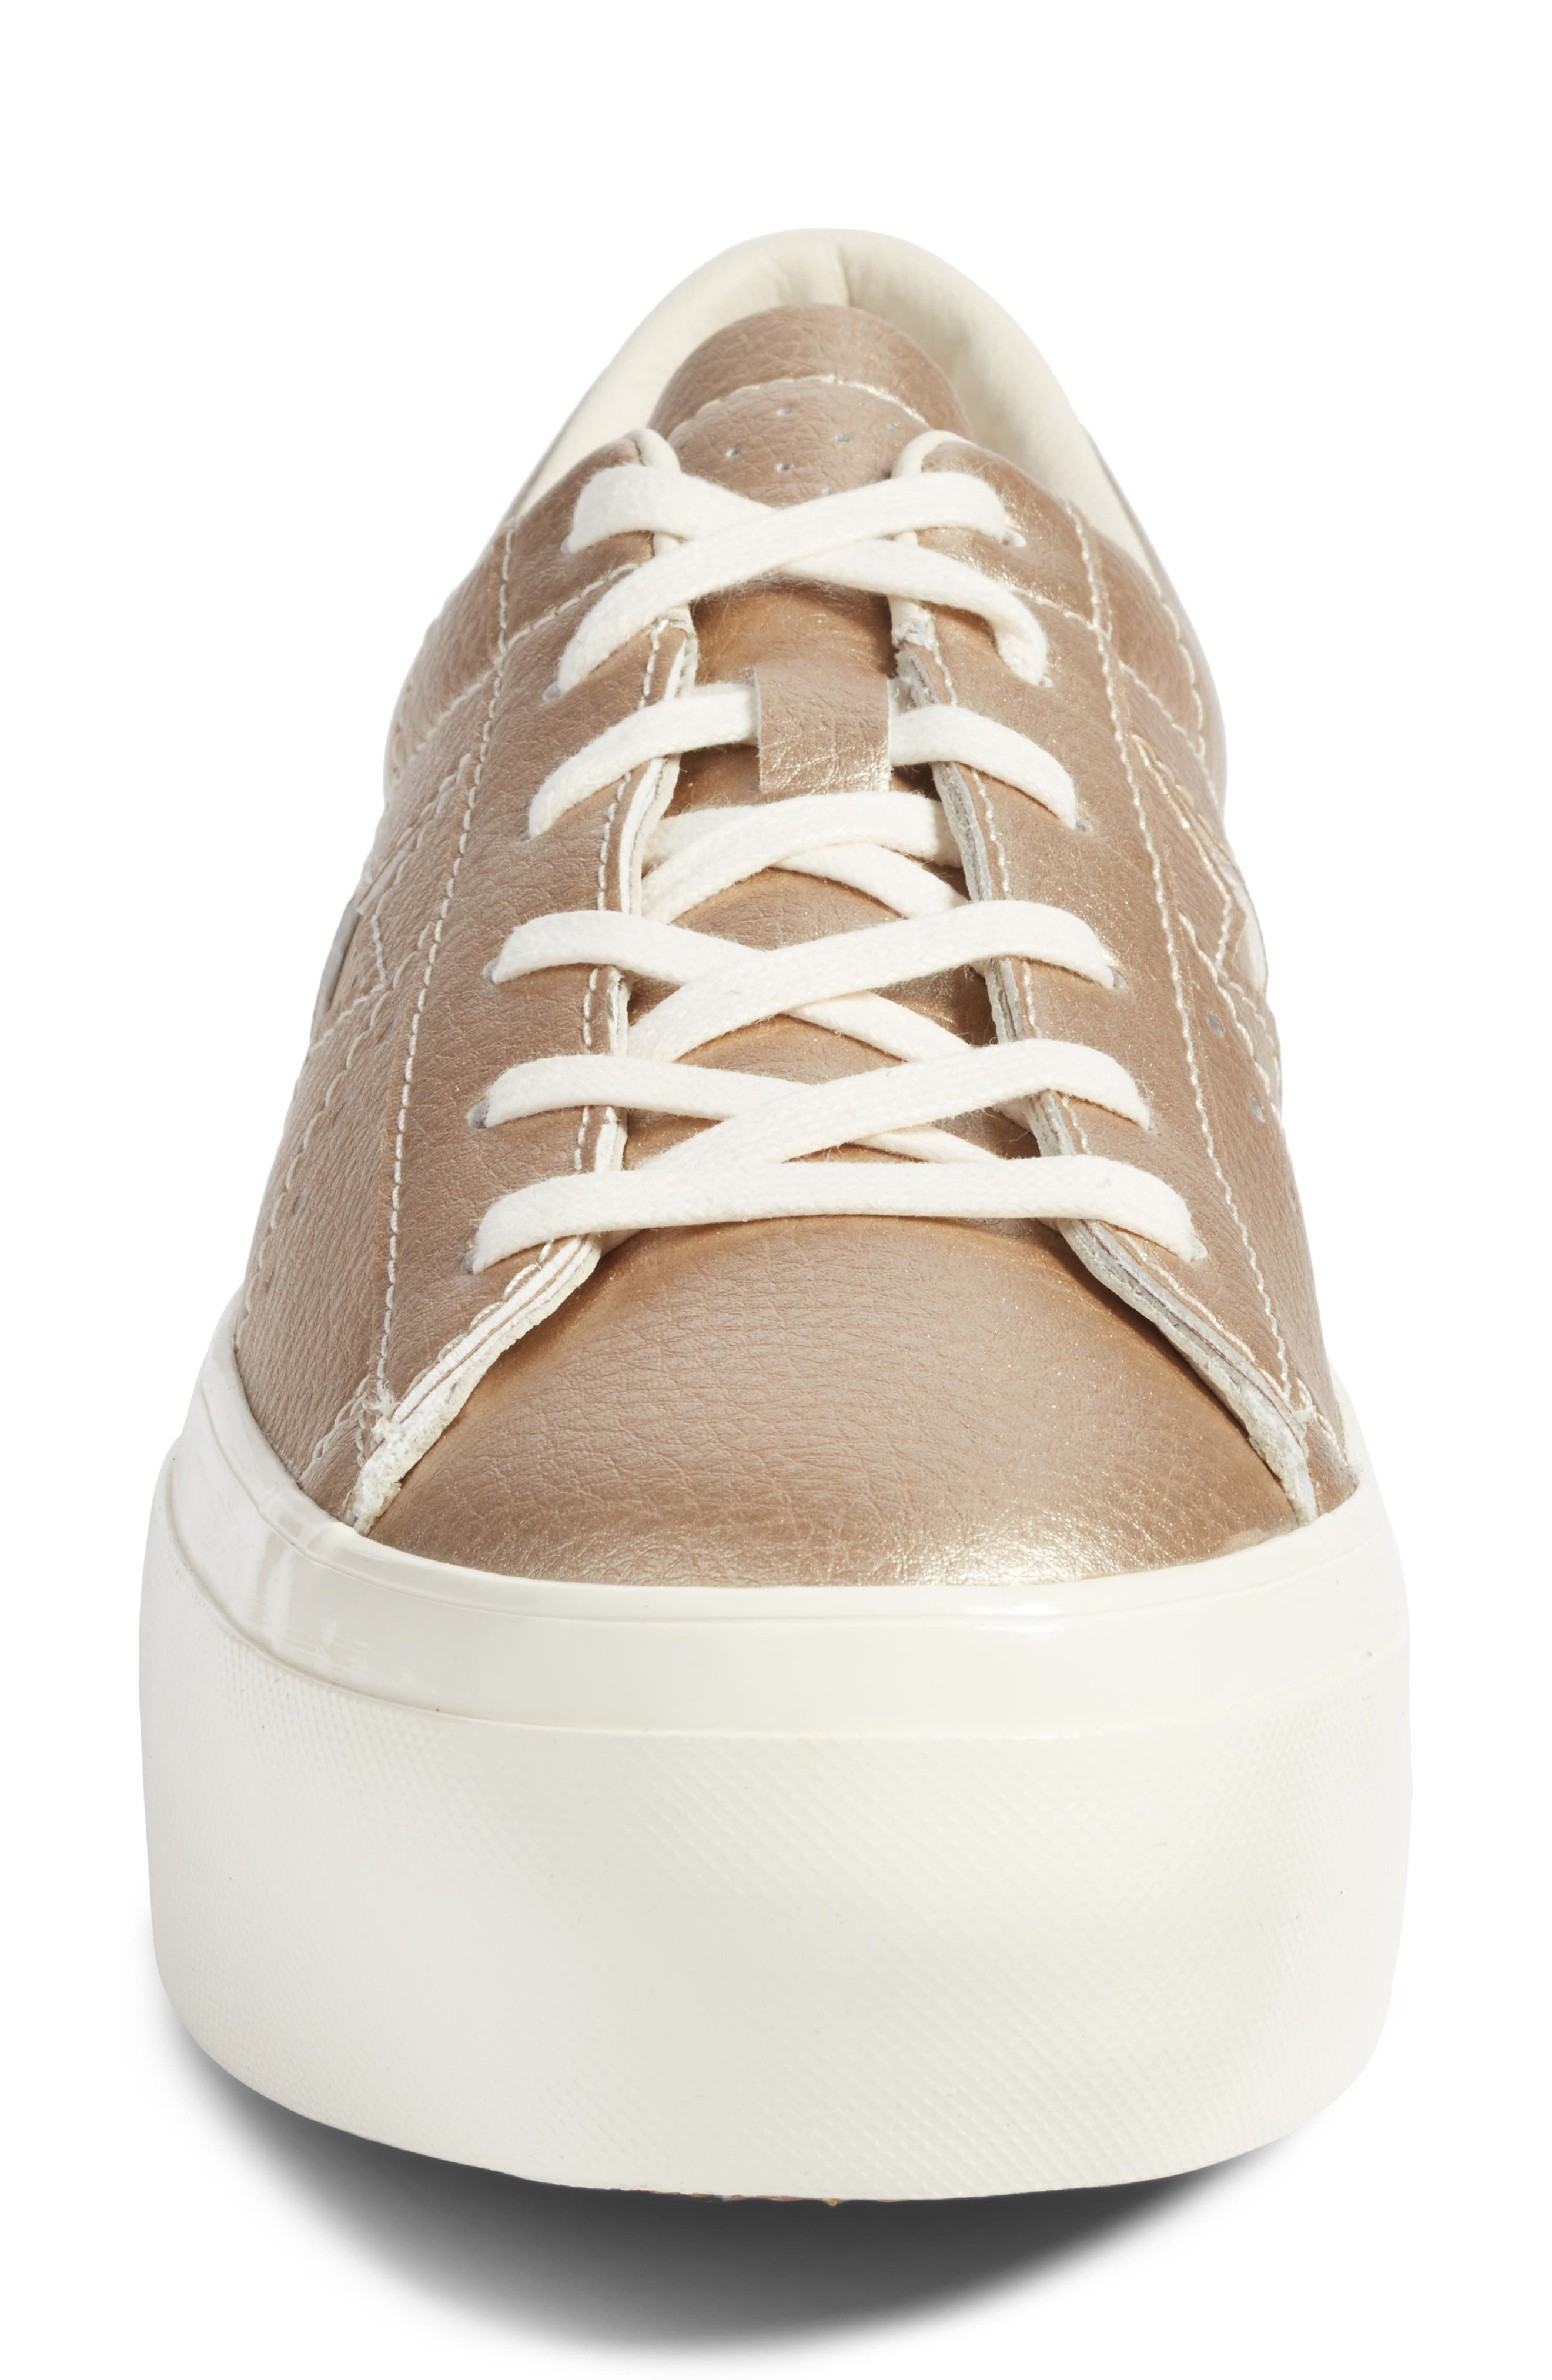 Chuck Taylor<sup>®</sup> All Star<sup>®</sup> One Star Metallic Platform Sneaker,                             Alternate thumbnail 4, color,